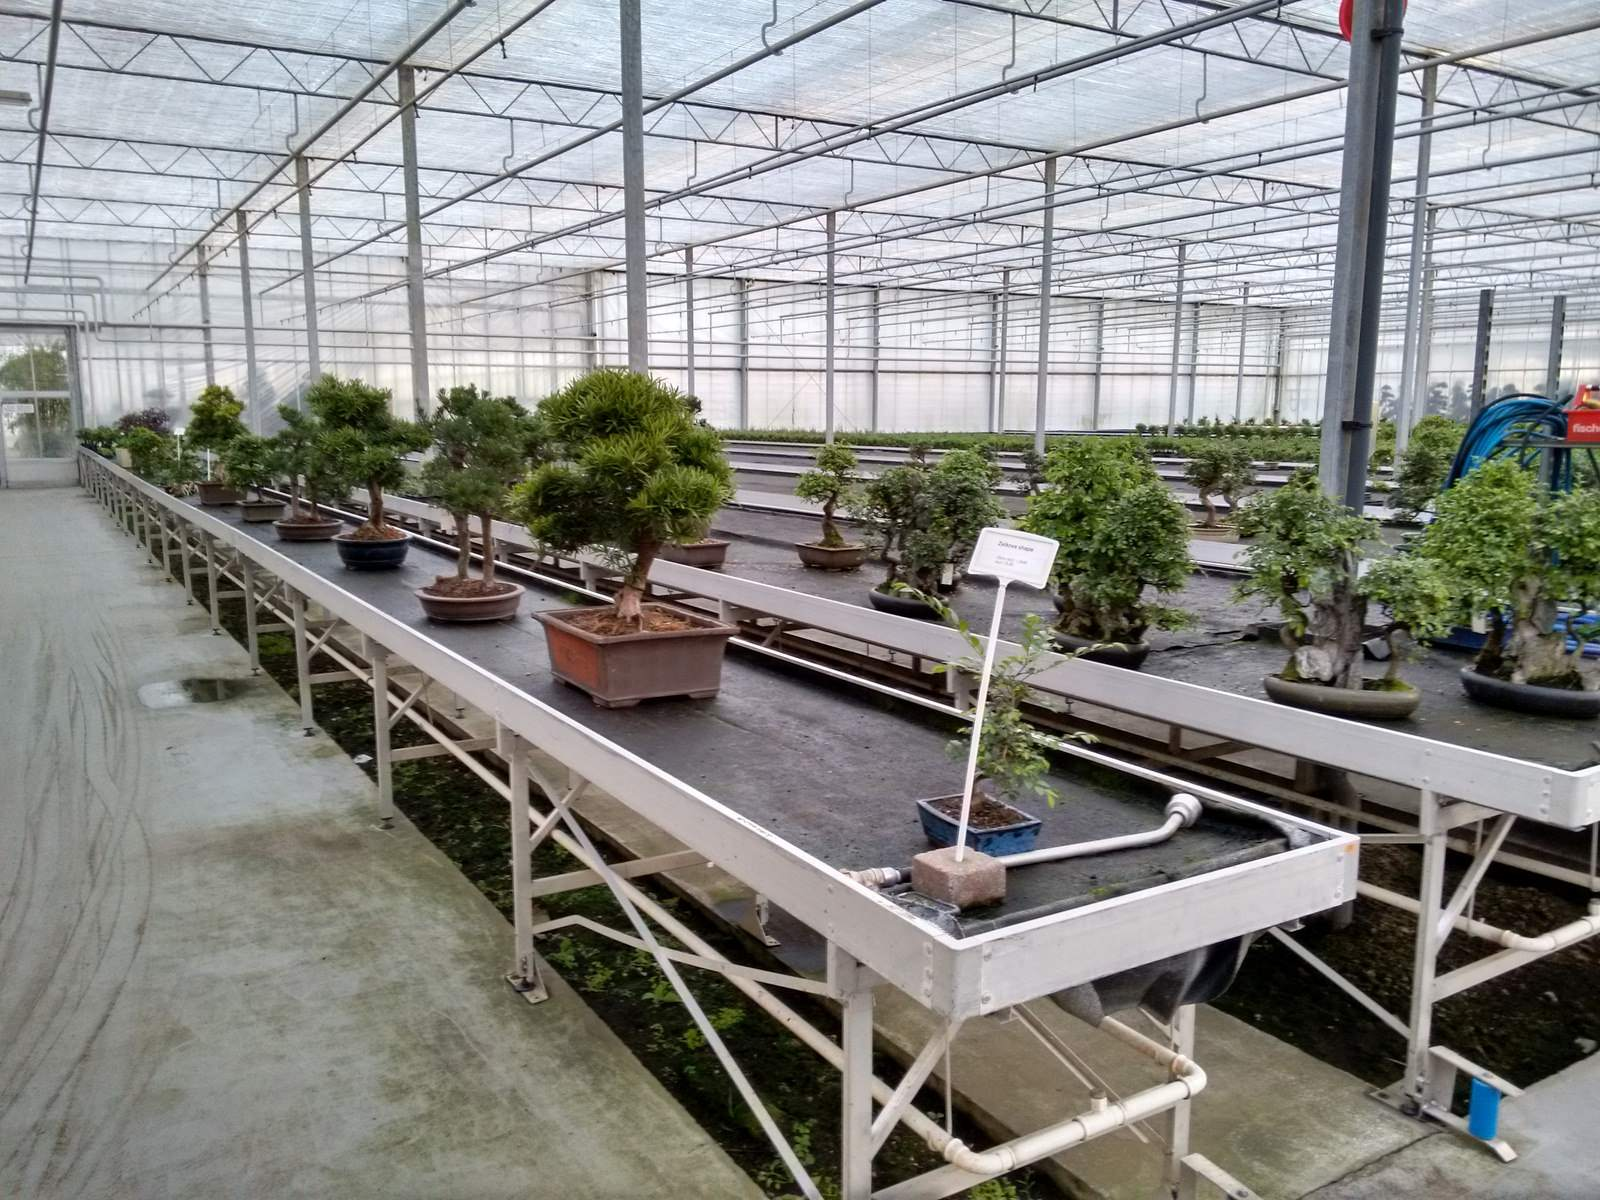 bonsai lodder1 Bonsai Lodder   One of the Largest Bonsai Store in the World, Netherlands